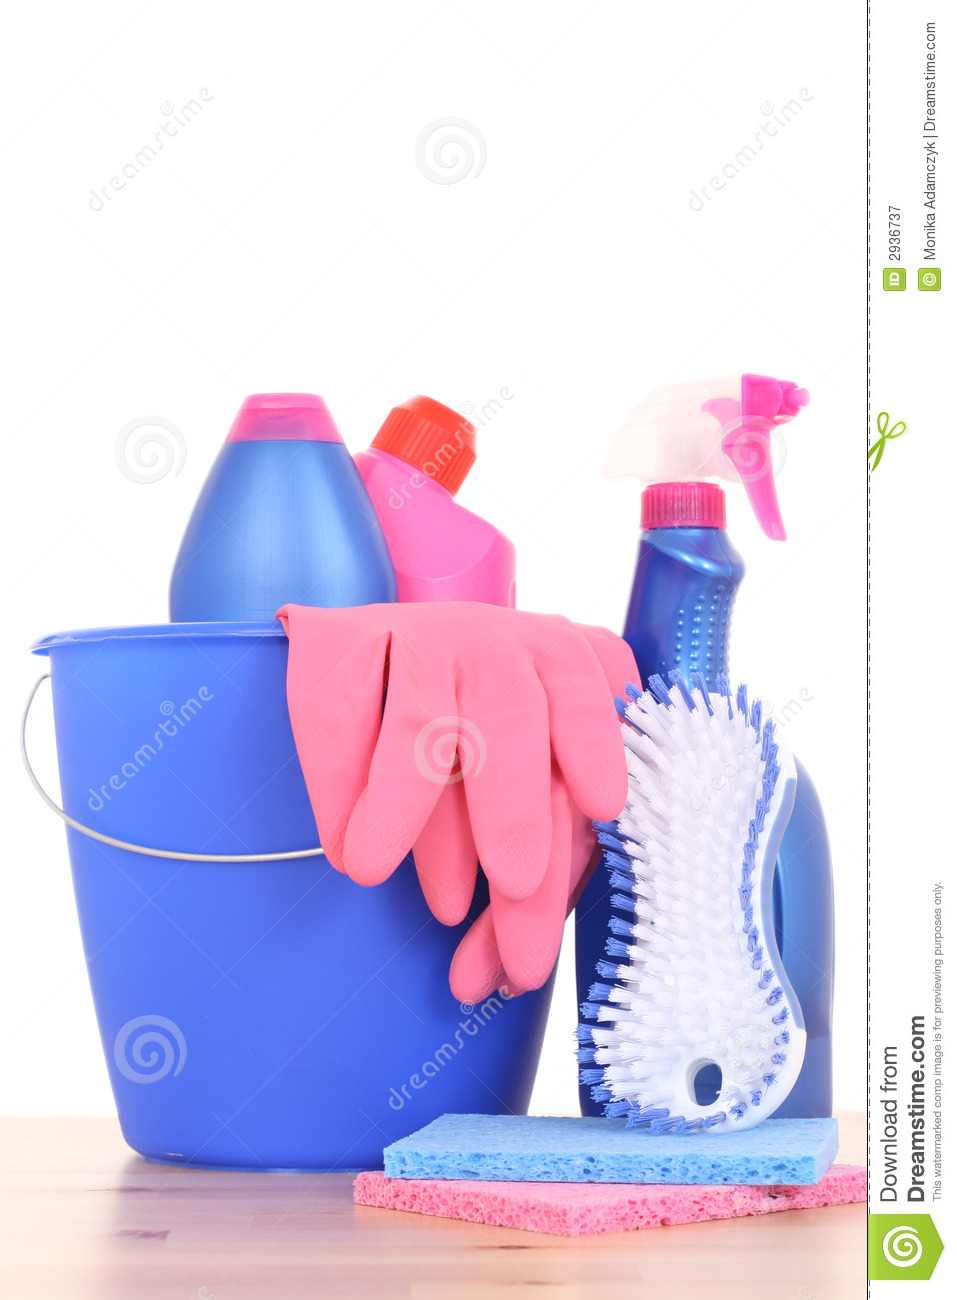 Cleaning house royalty free stock photography image 2936737 for House cleaning stock photos